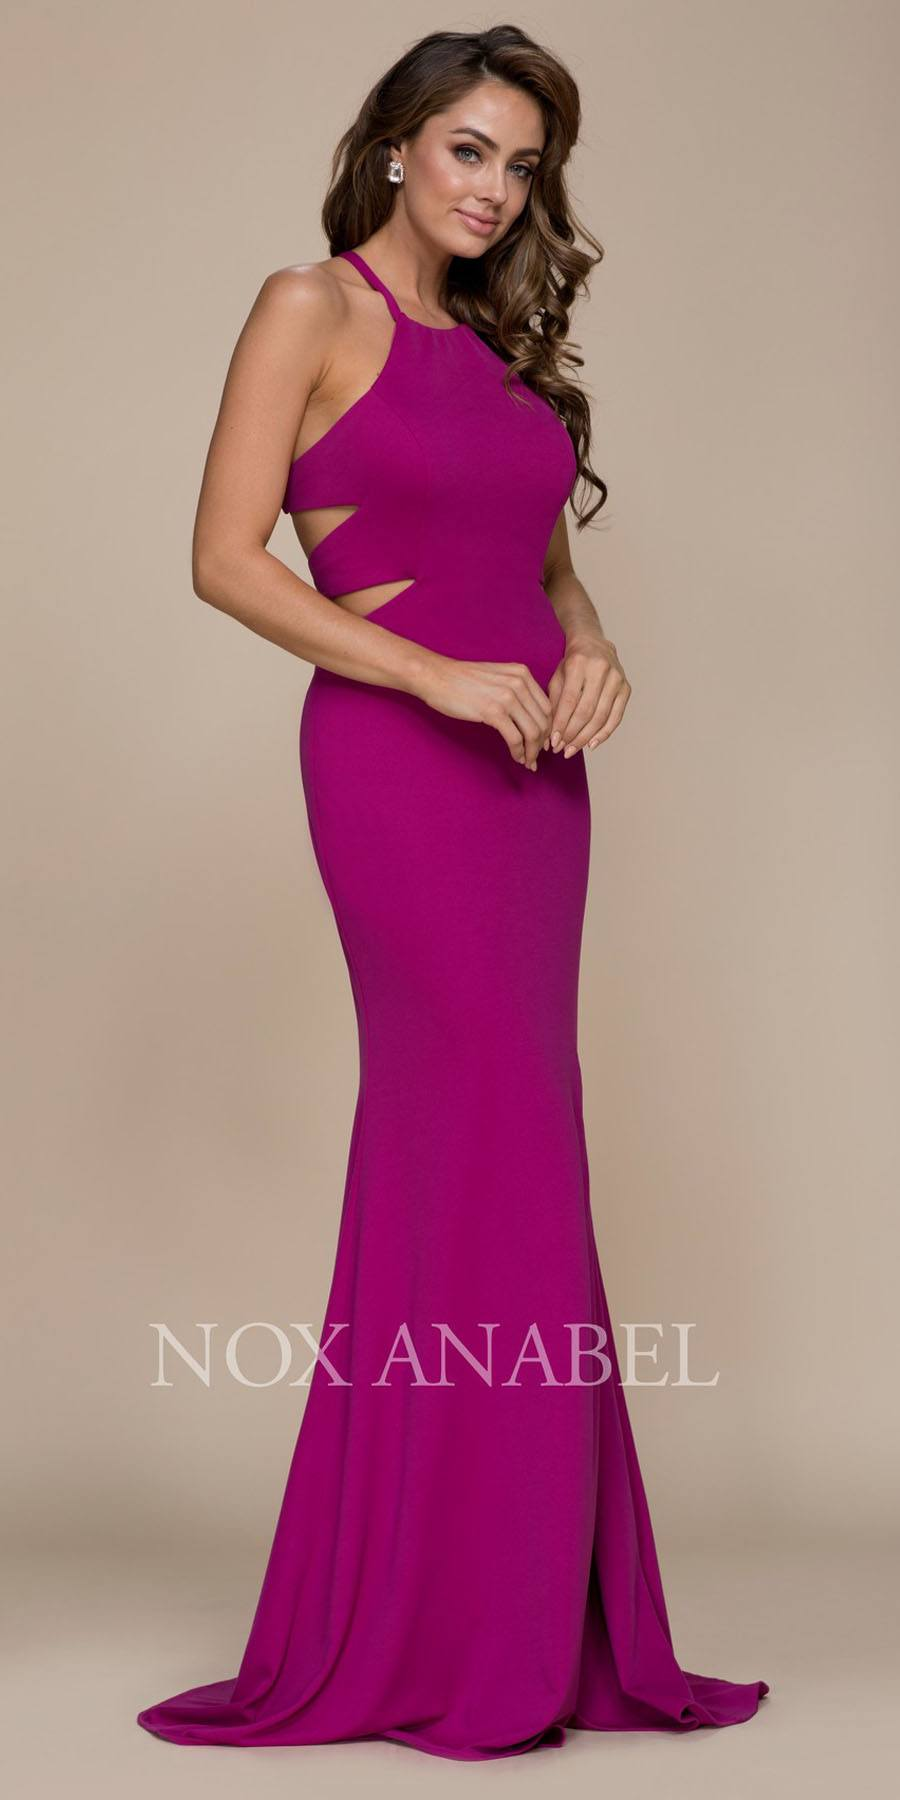 Nox Anabel C026 Magenta Halter Cut Out Long Prom Dress Strappy Back ...